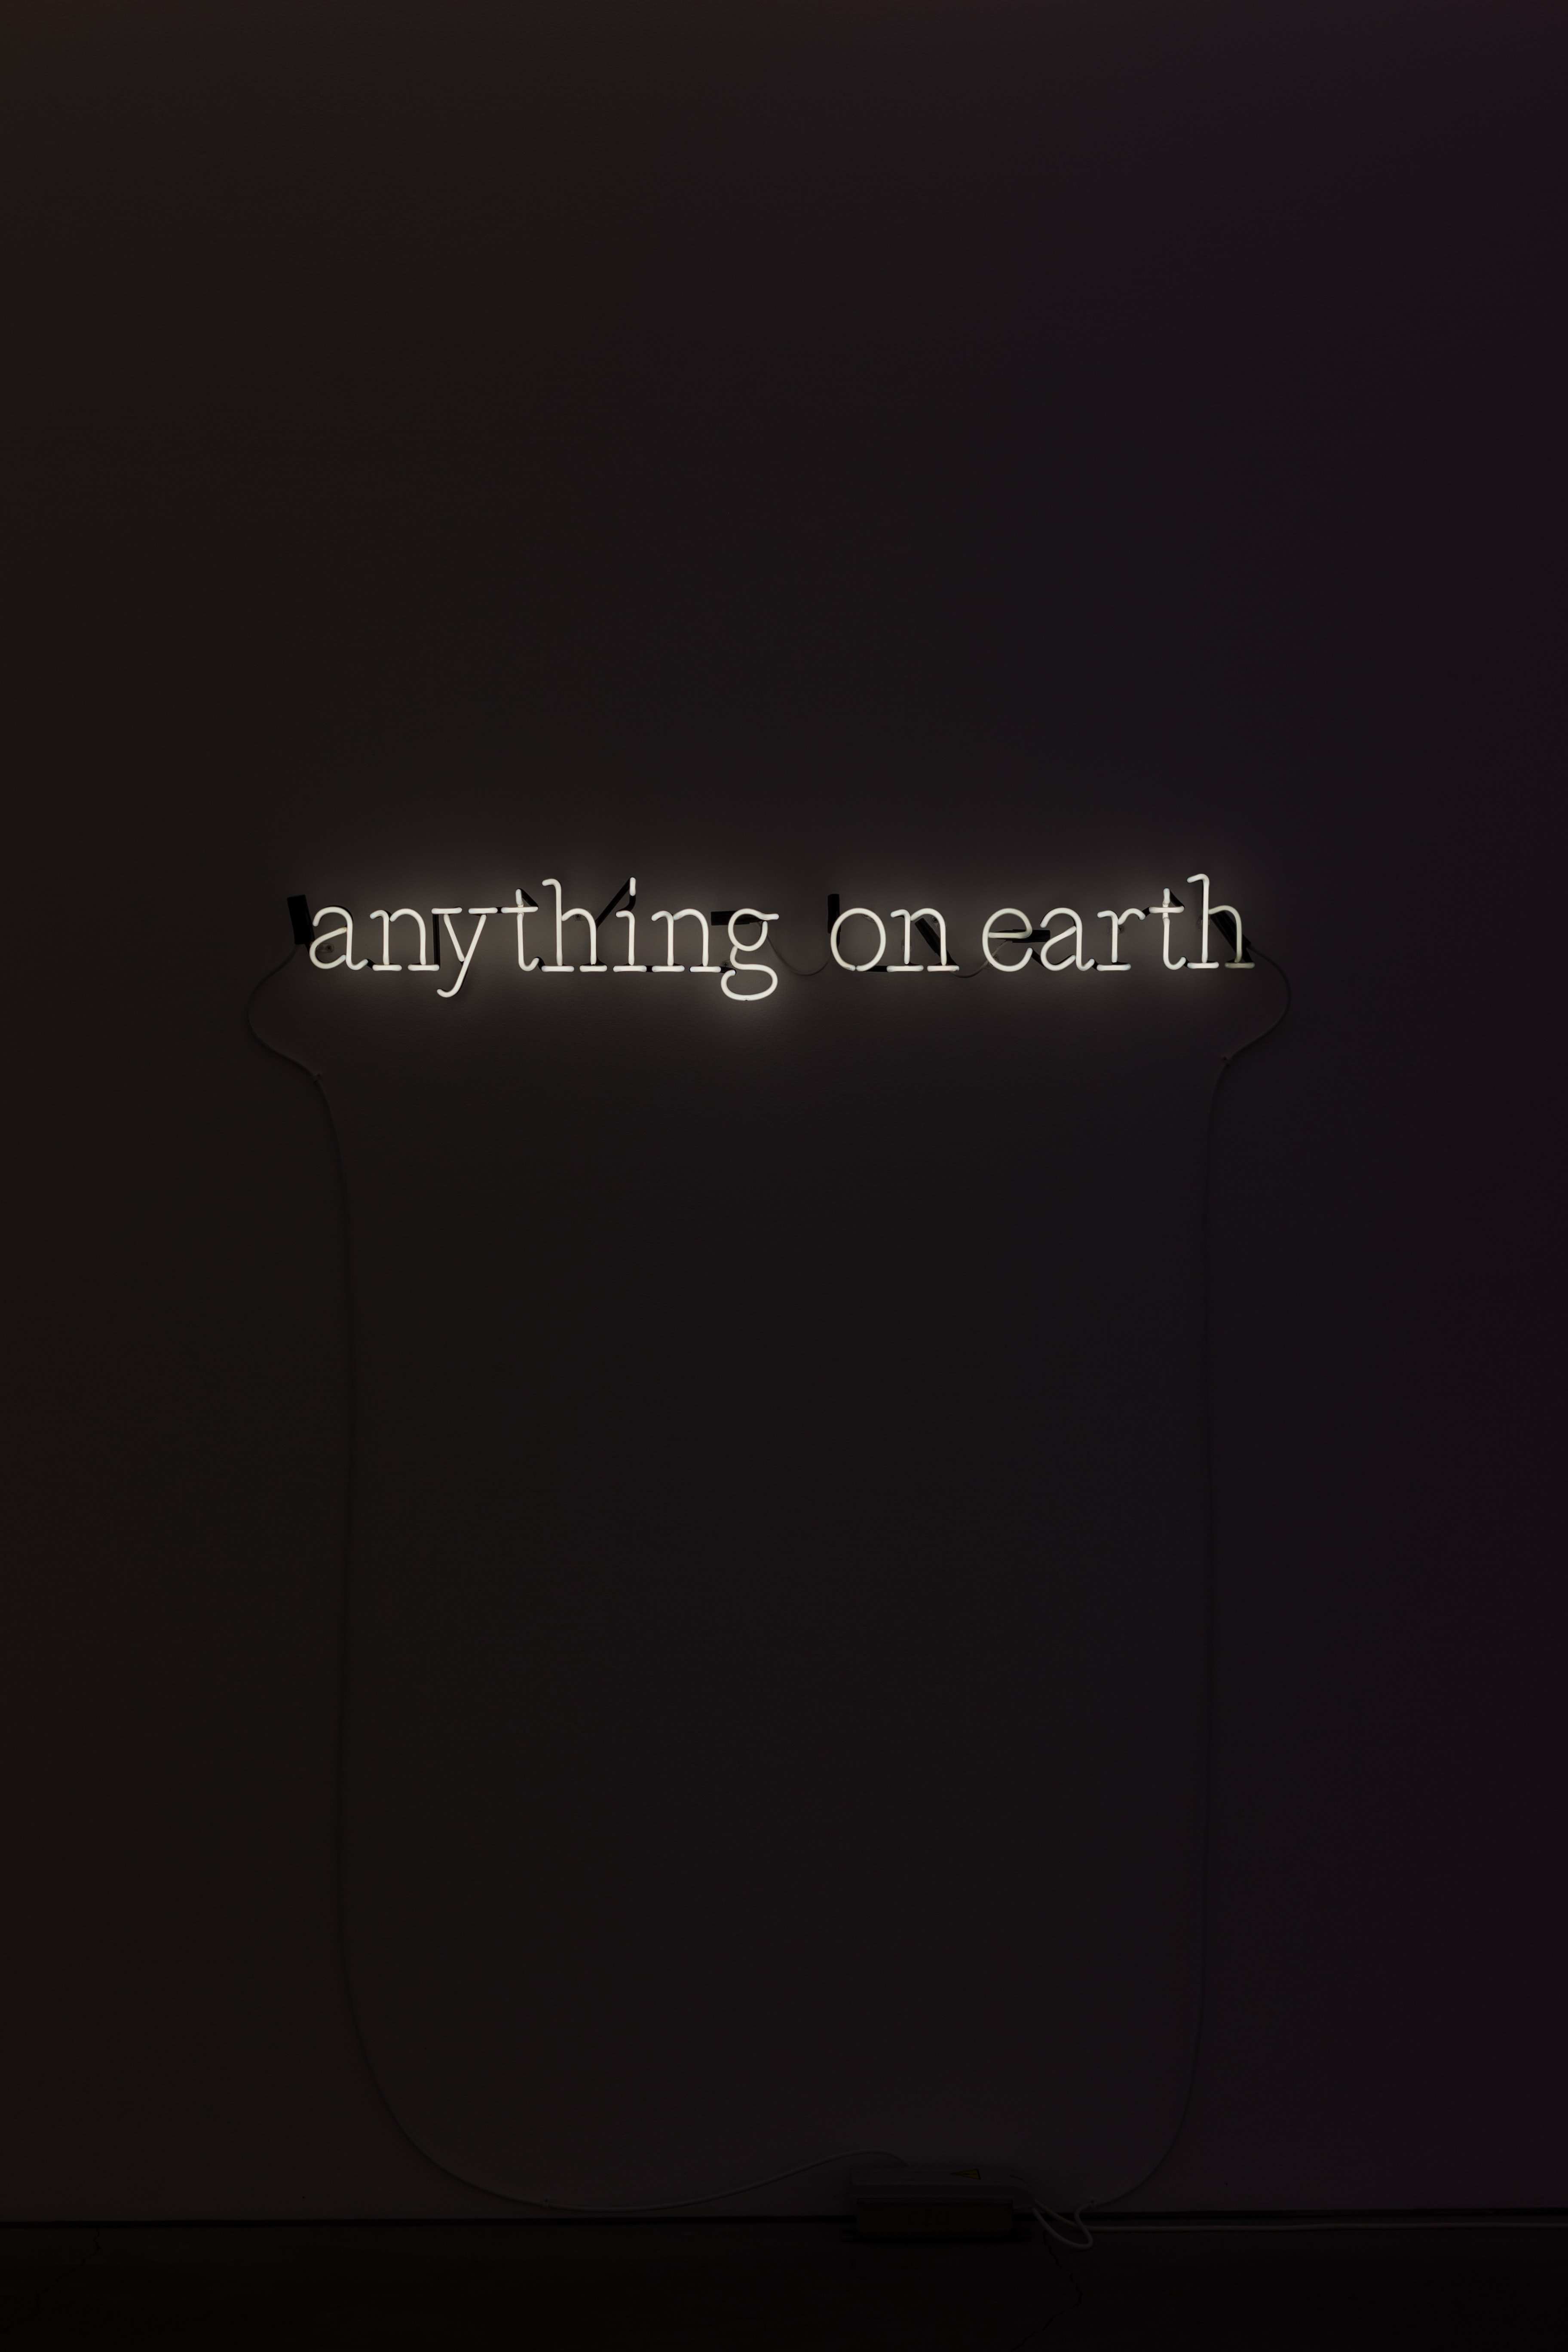 anything on earth text